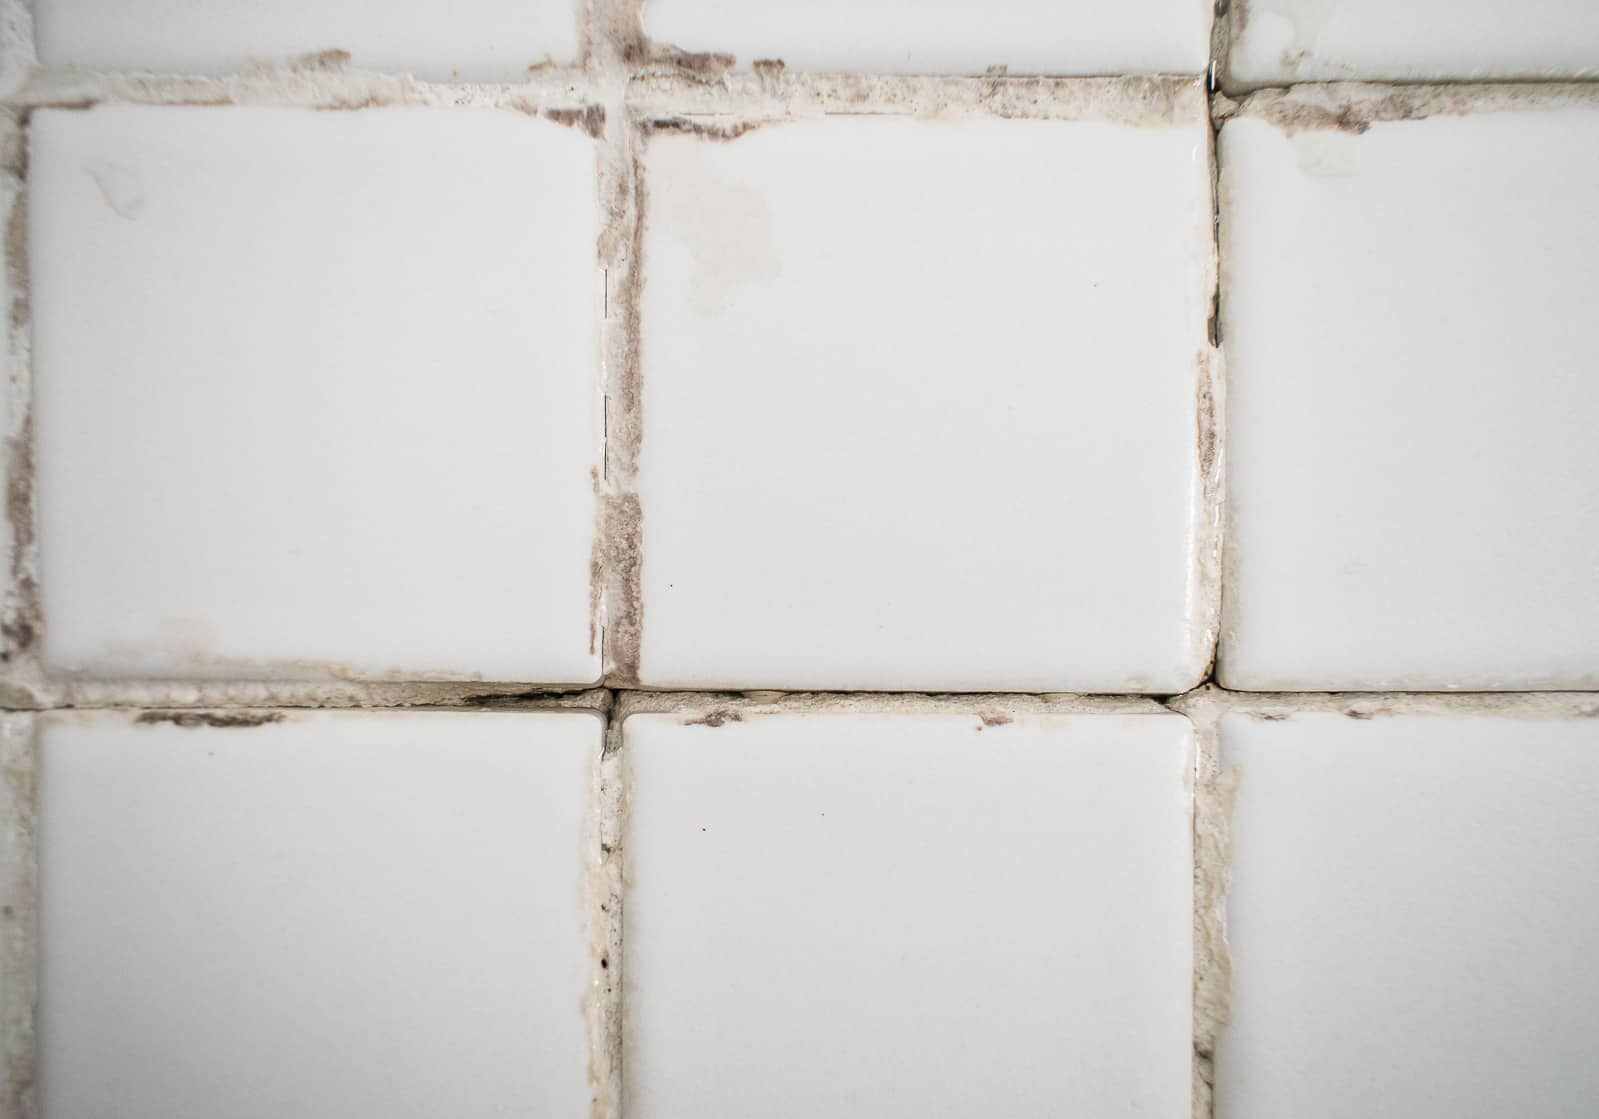 cracked grout between the tiles